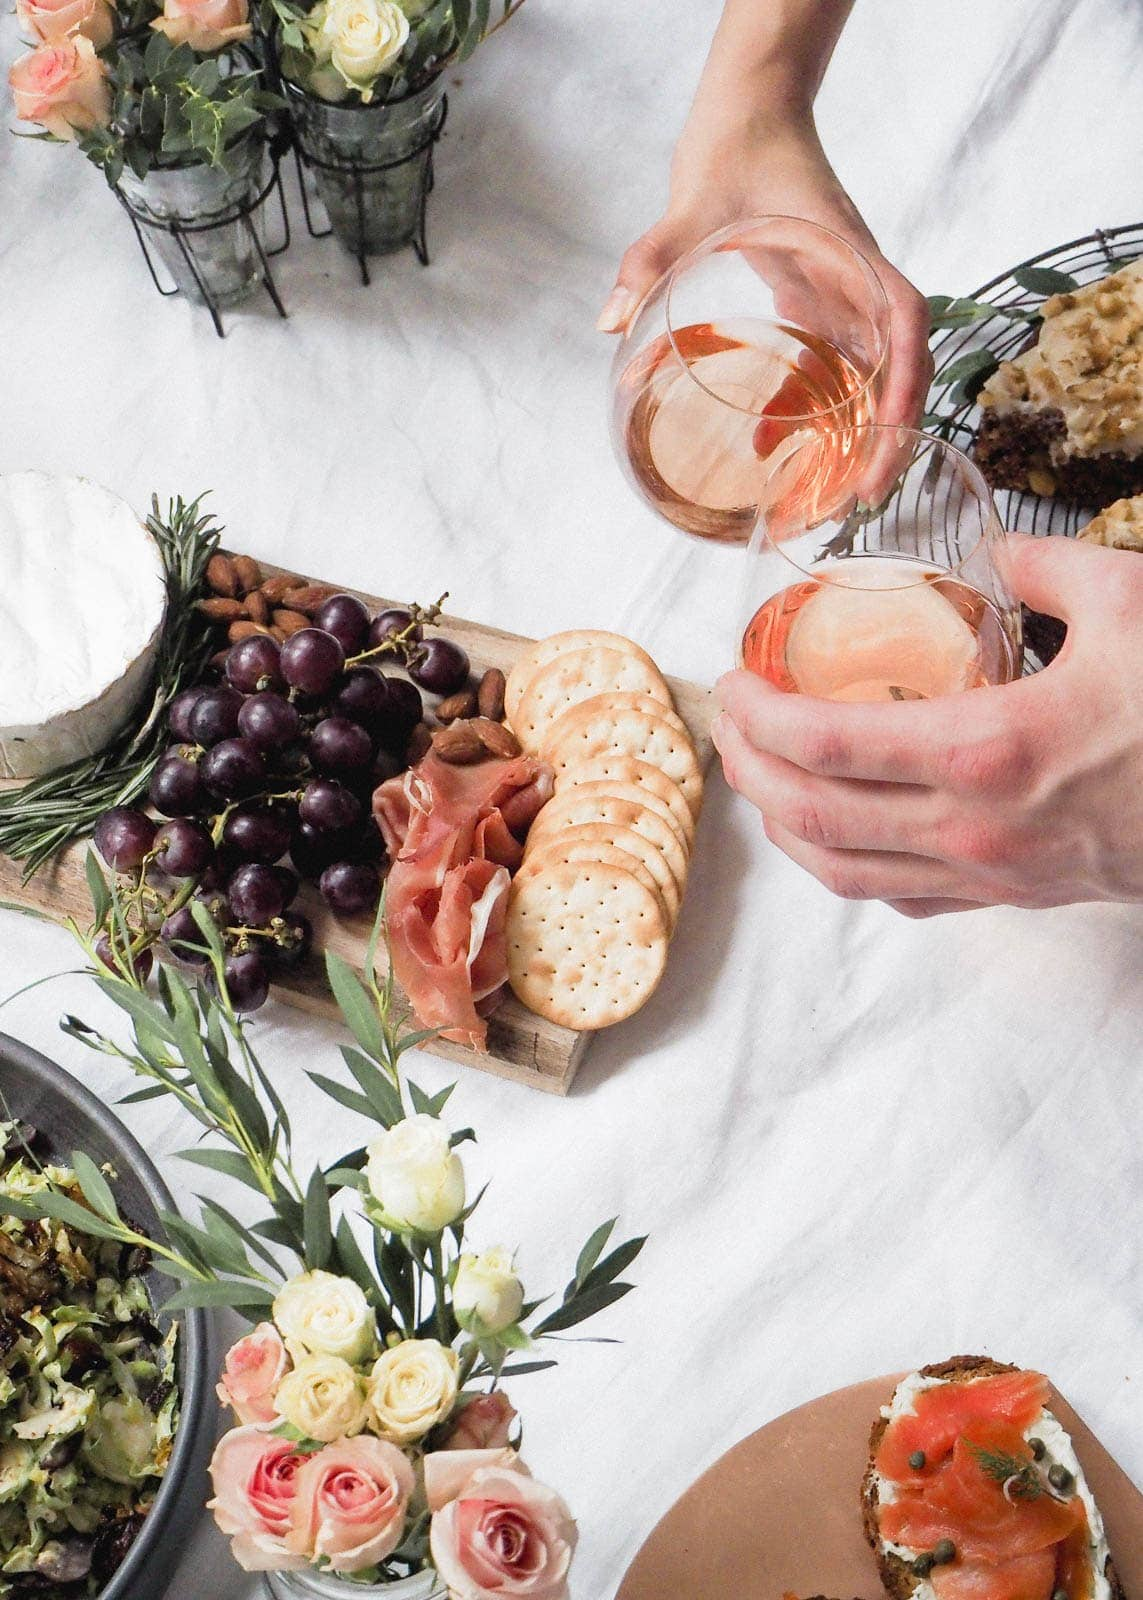 Indoor Picknick 5 steps to create the indoor picnic date with recipes